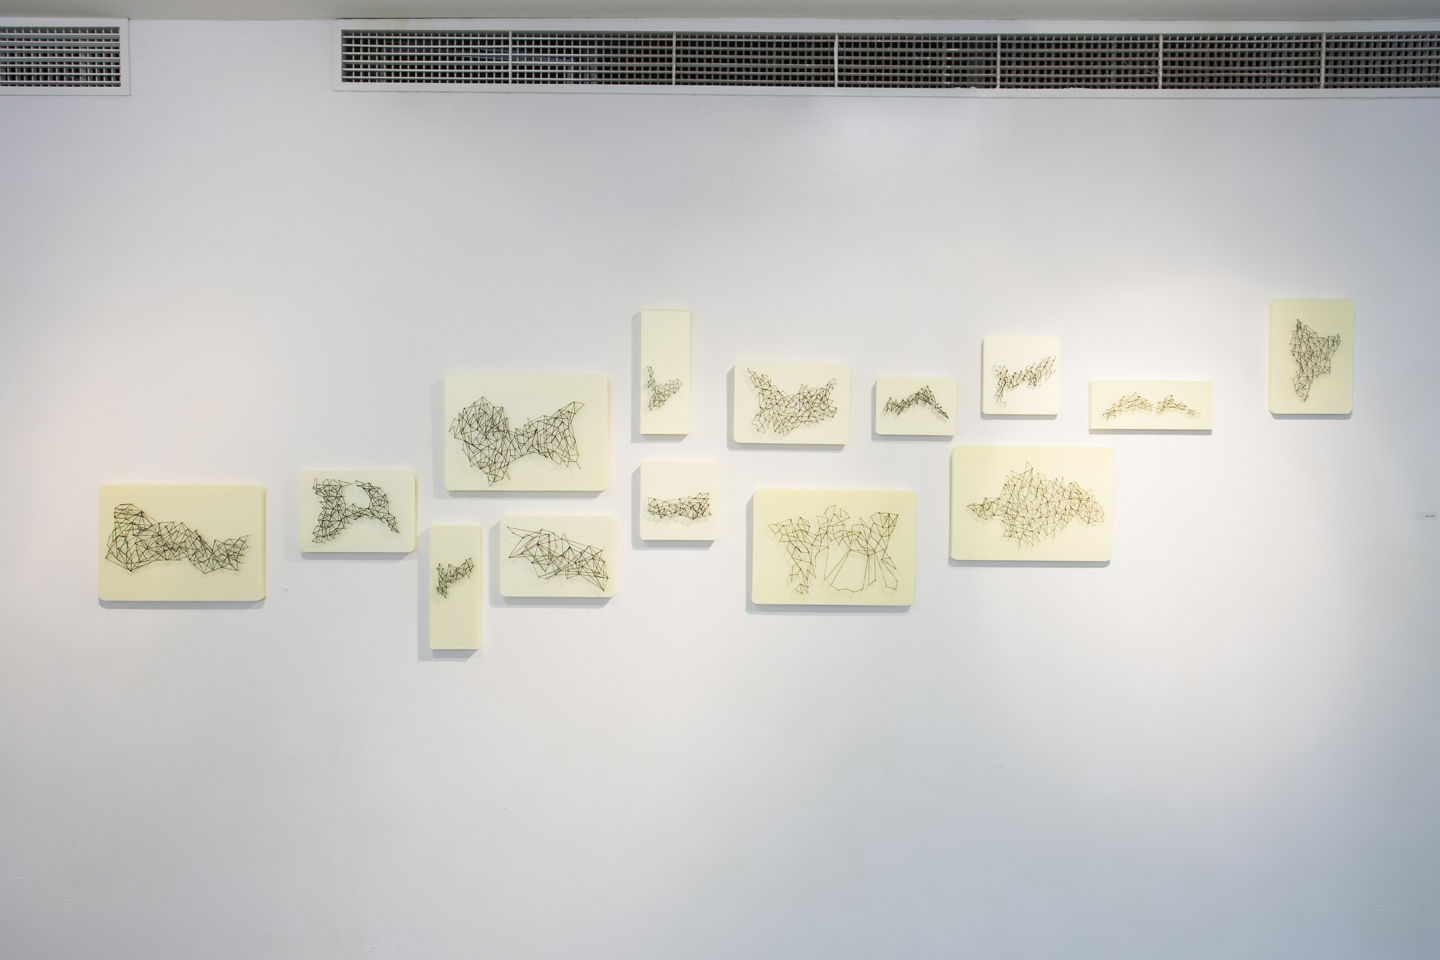 Installation View - Coordinates